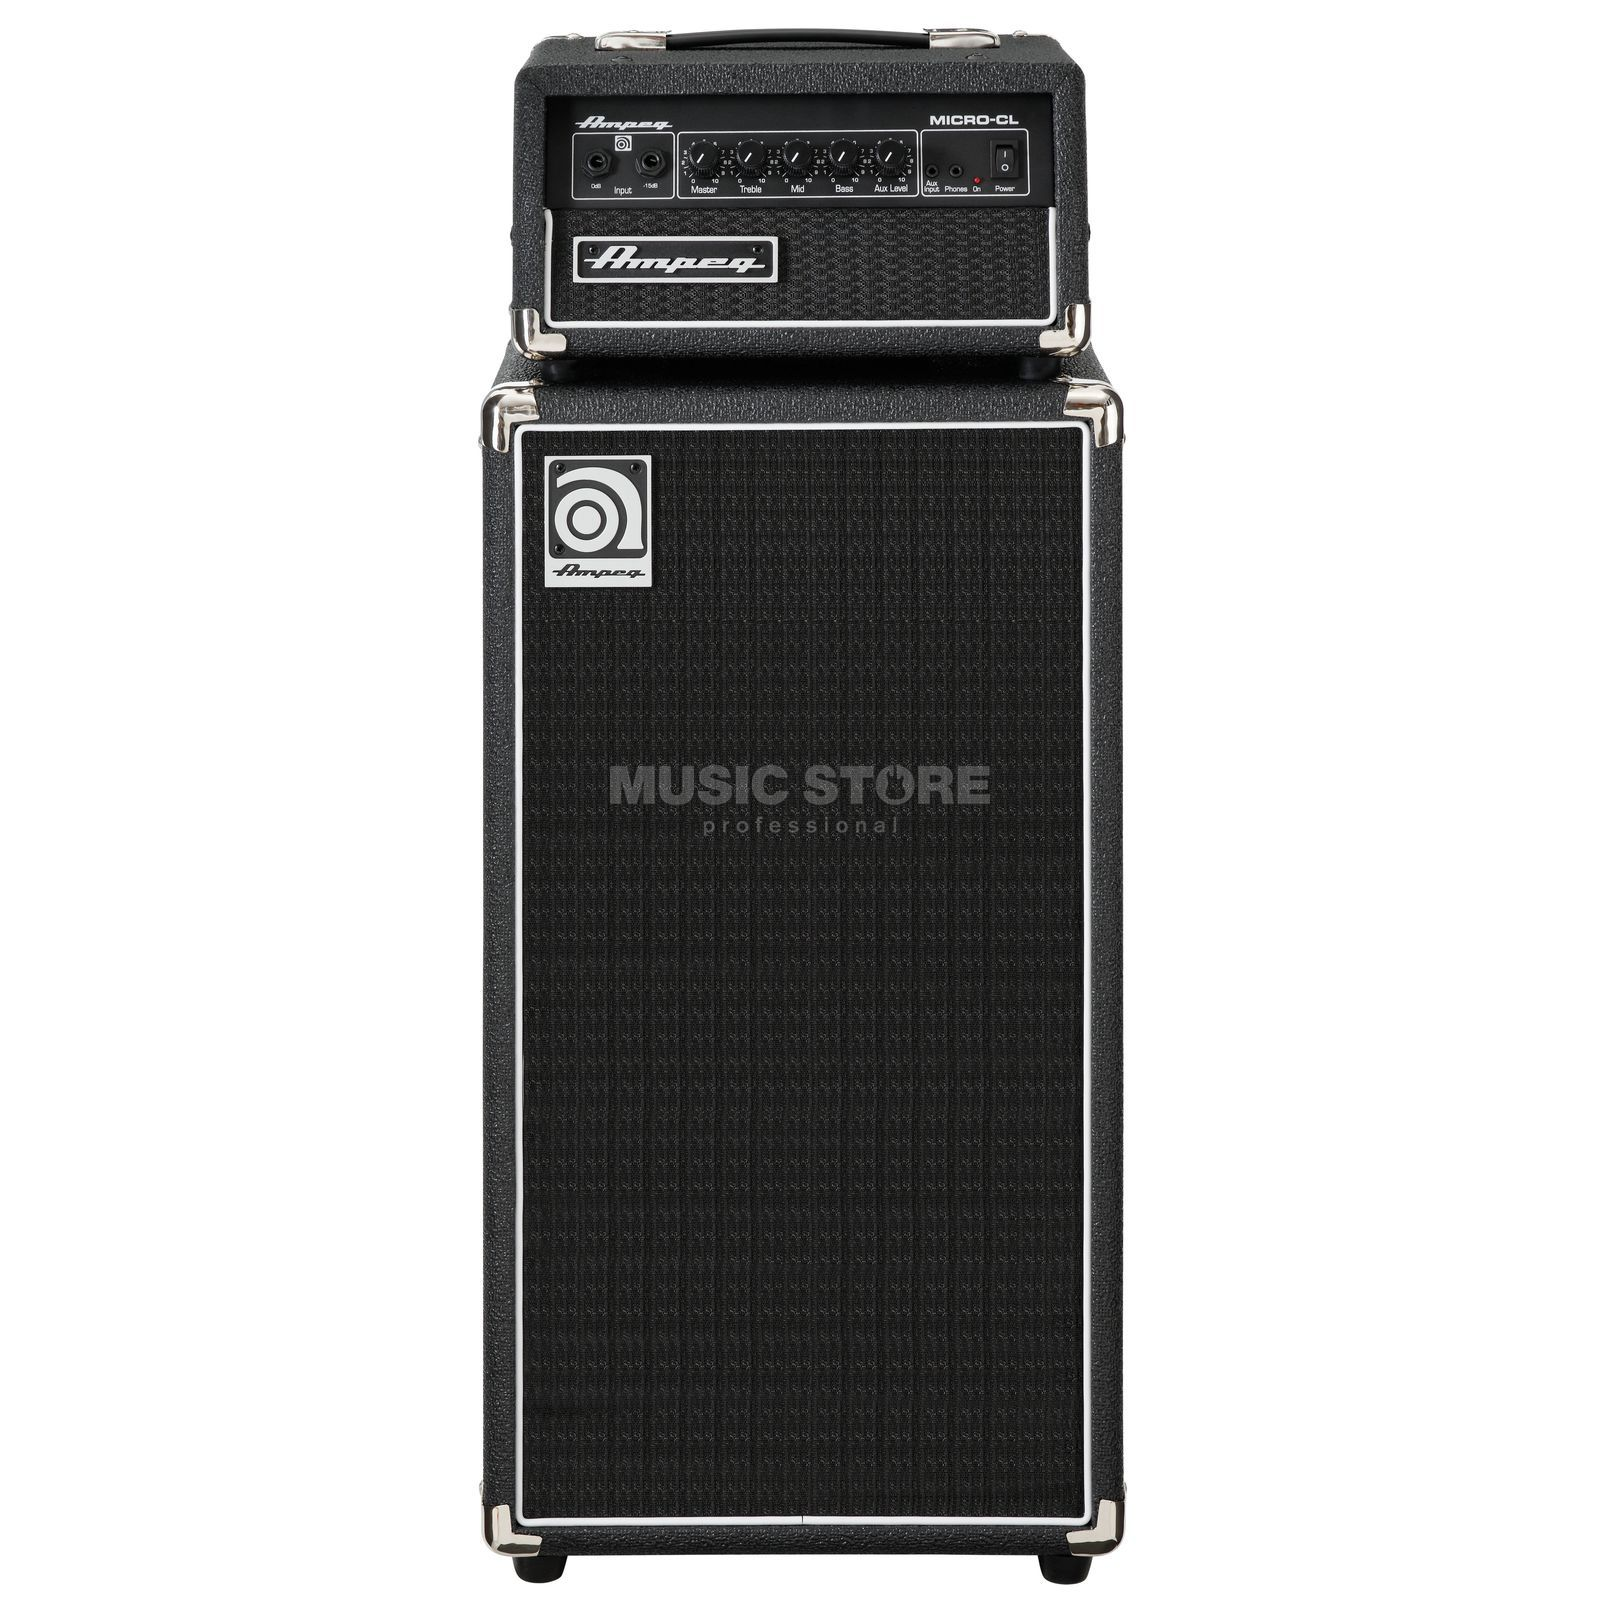 Ampeg Micro-CL Bass Guitar Amplifier  Mini Stack   Produktbillede